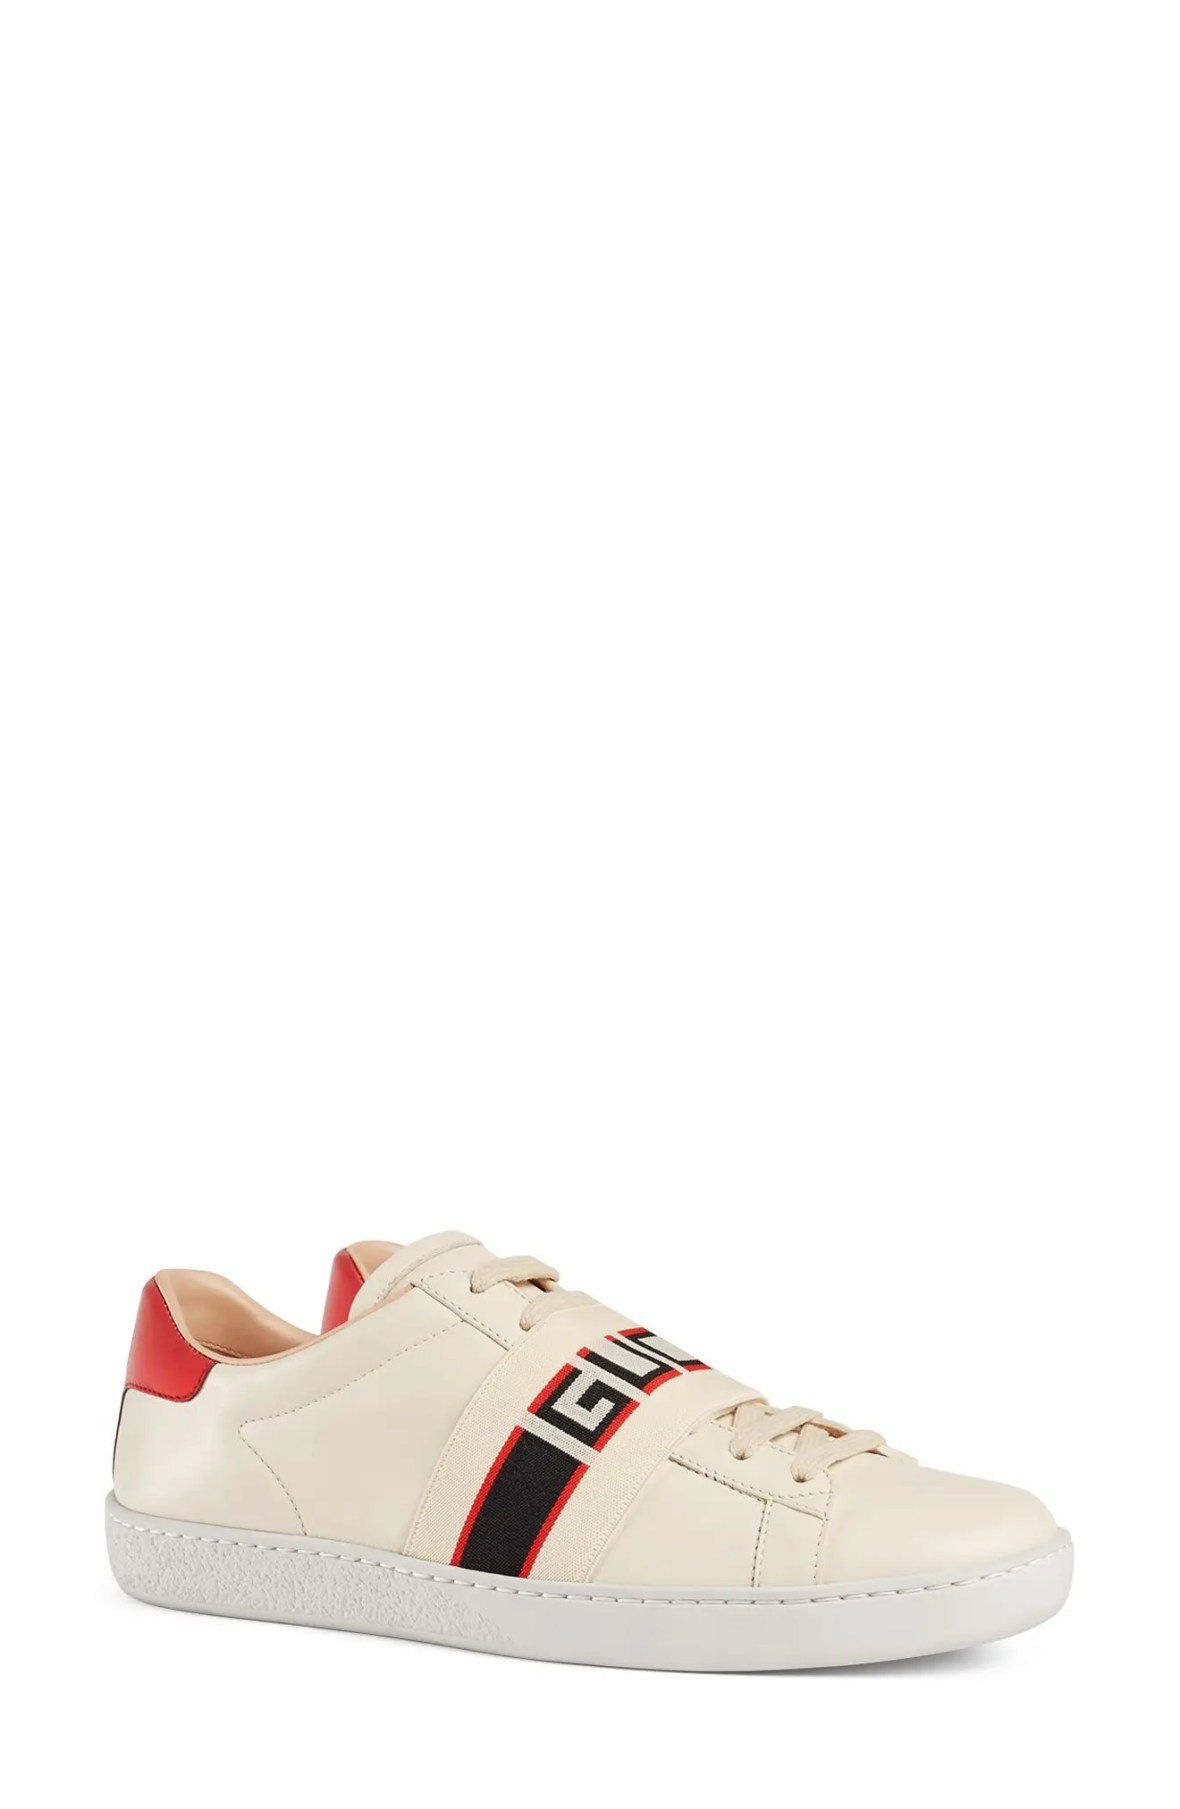 Gucci New Ace Logo Strap Sneaker (Women)